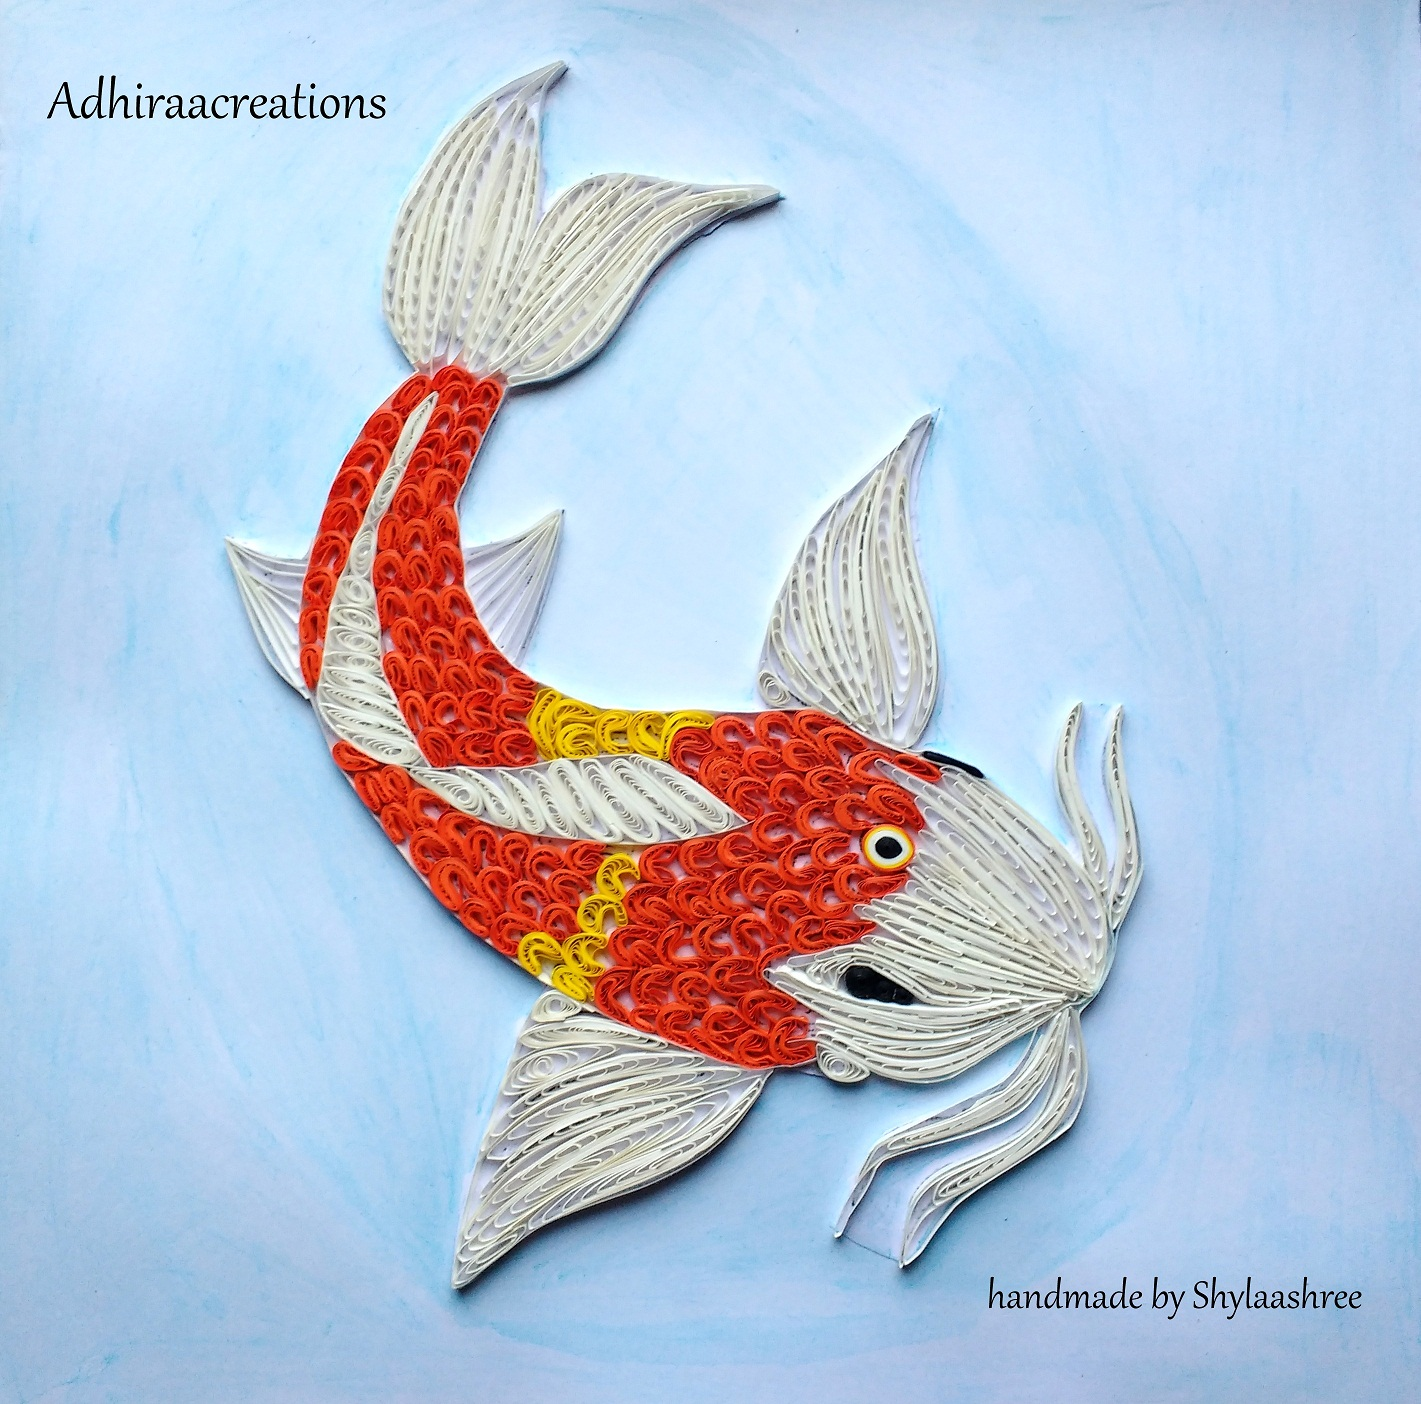 Adhiraacreations: Under the sea @IQCG